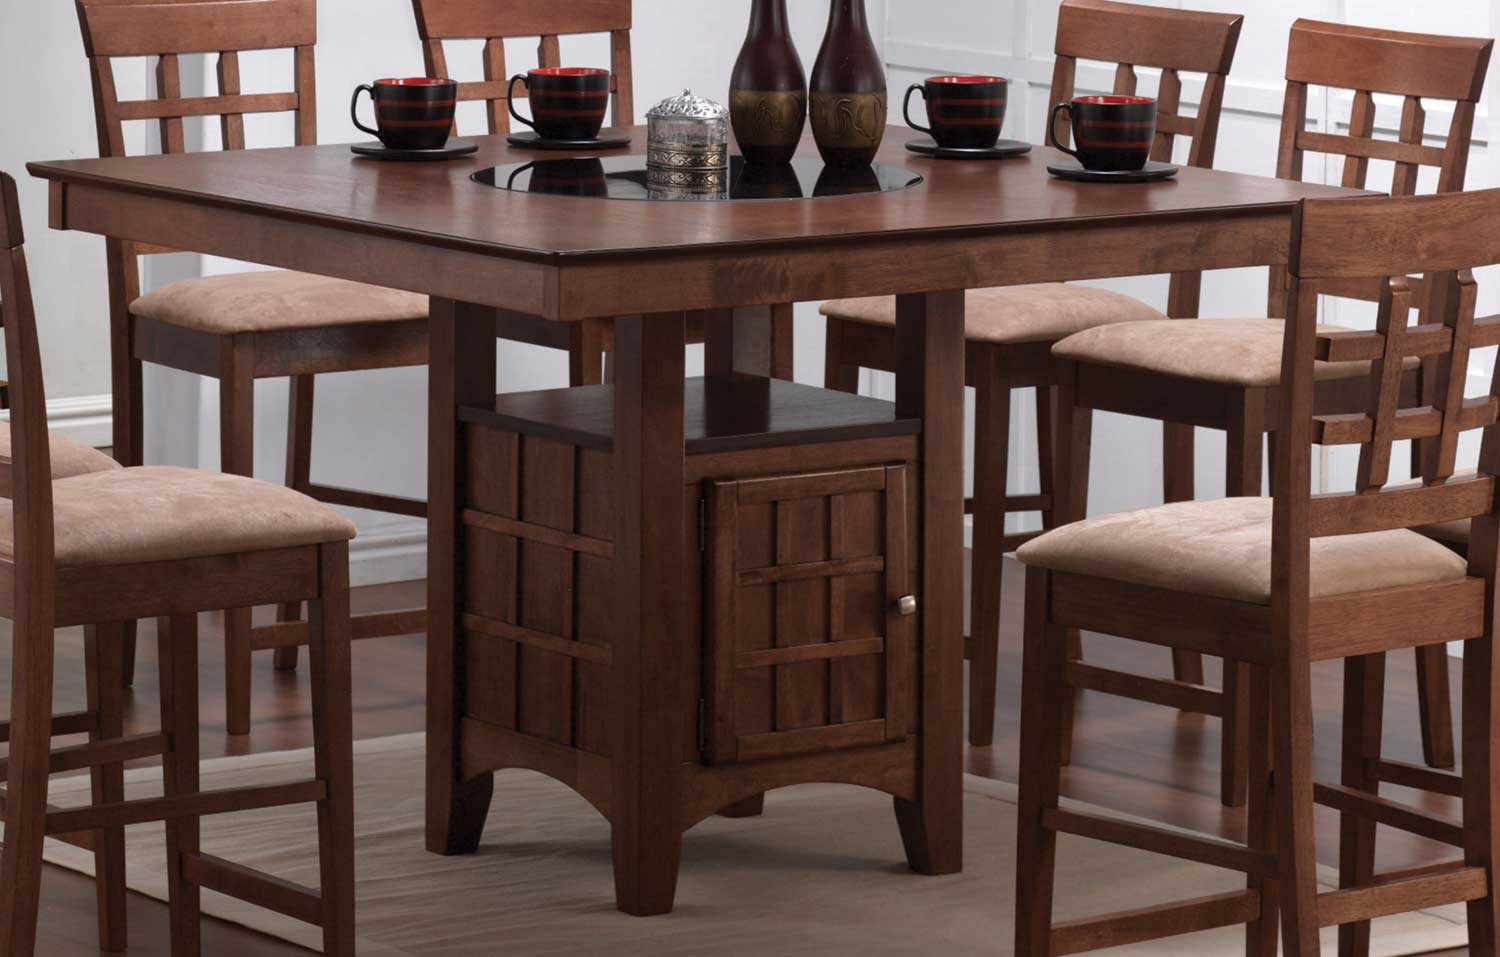 Coaster Mix And Match Counter Height Dining Table With Storage Pedestal Base Walnut